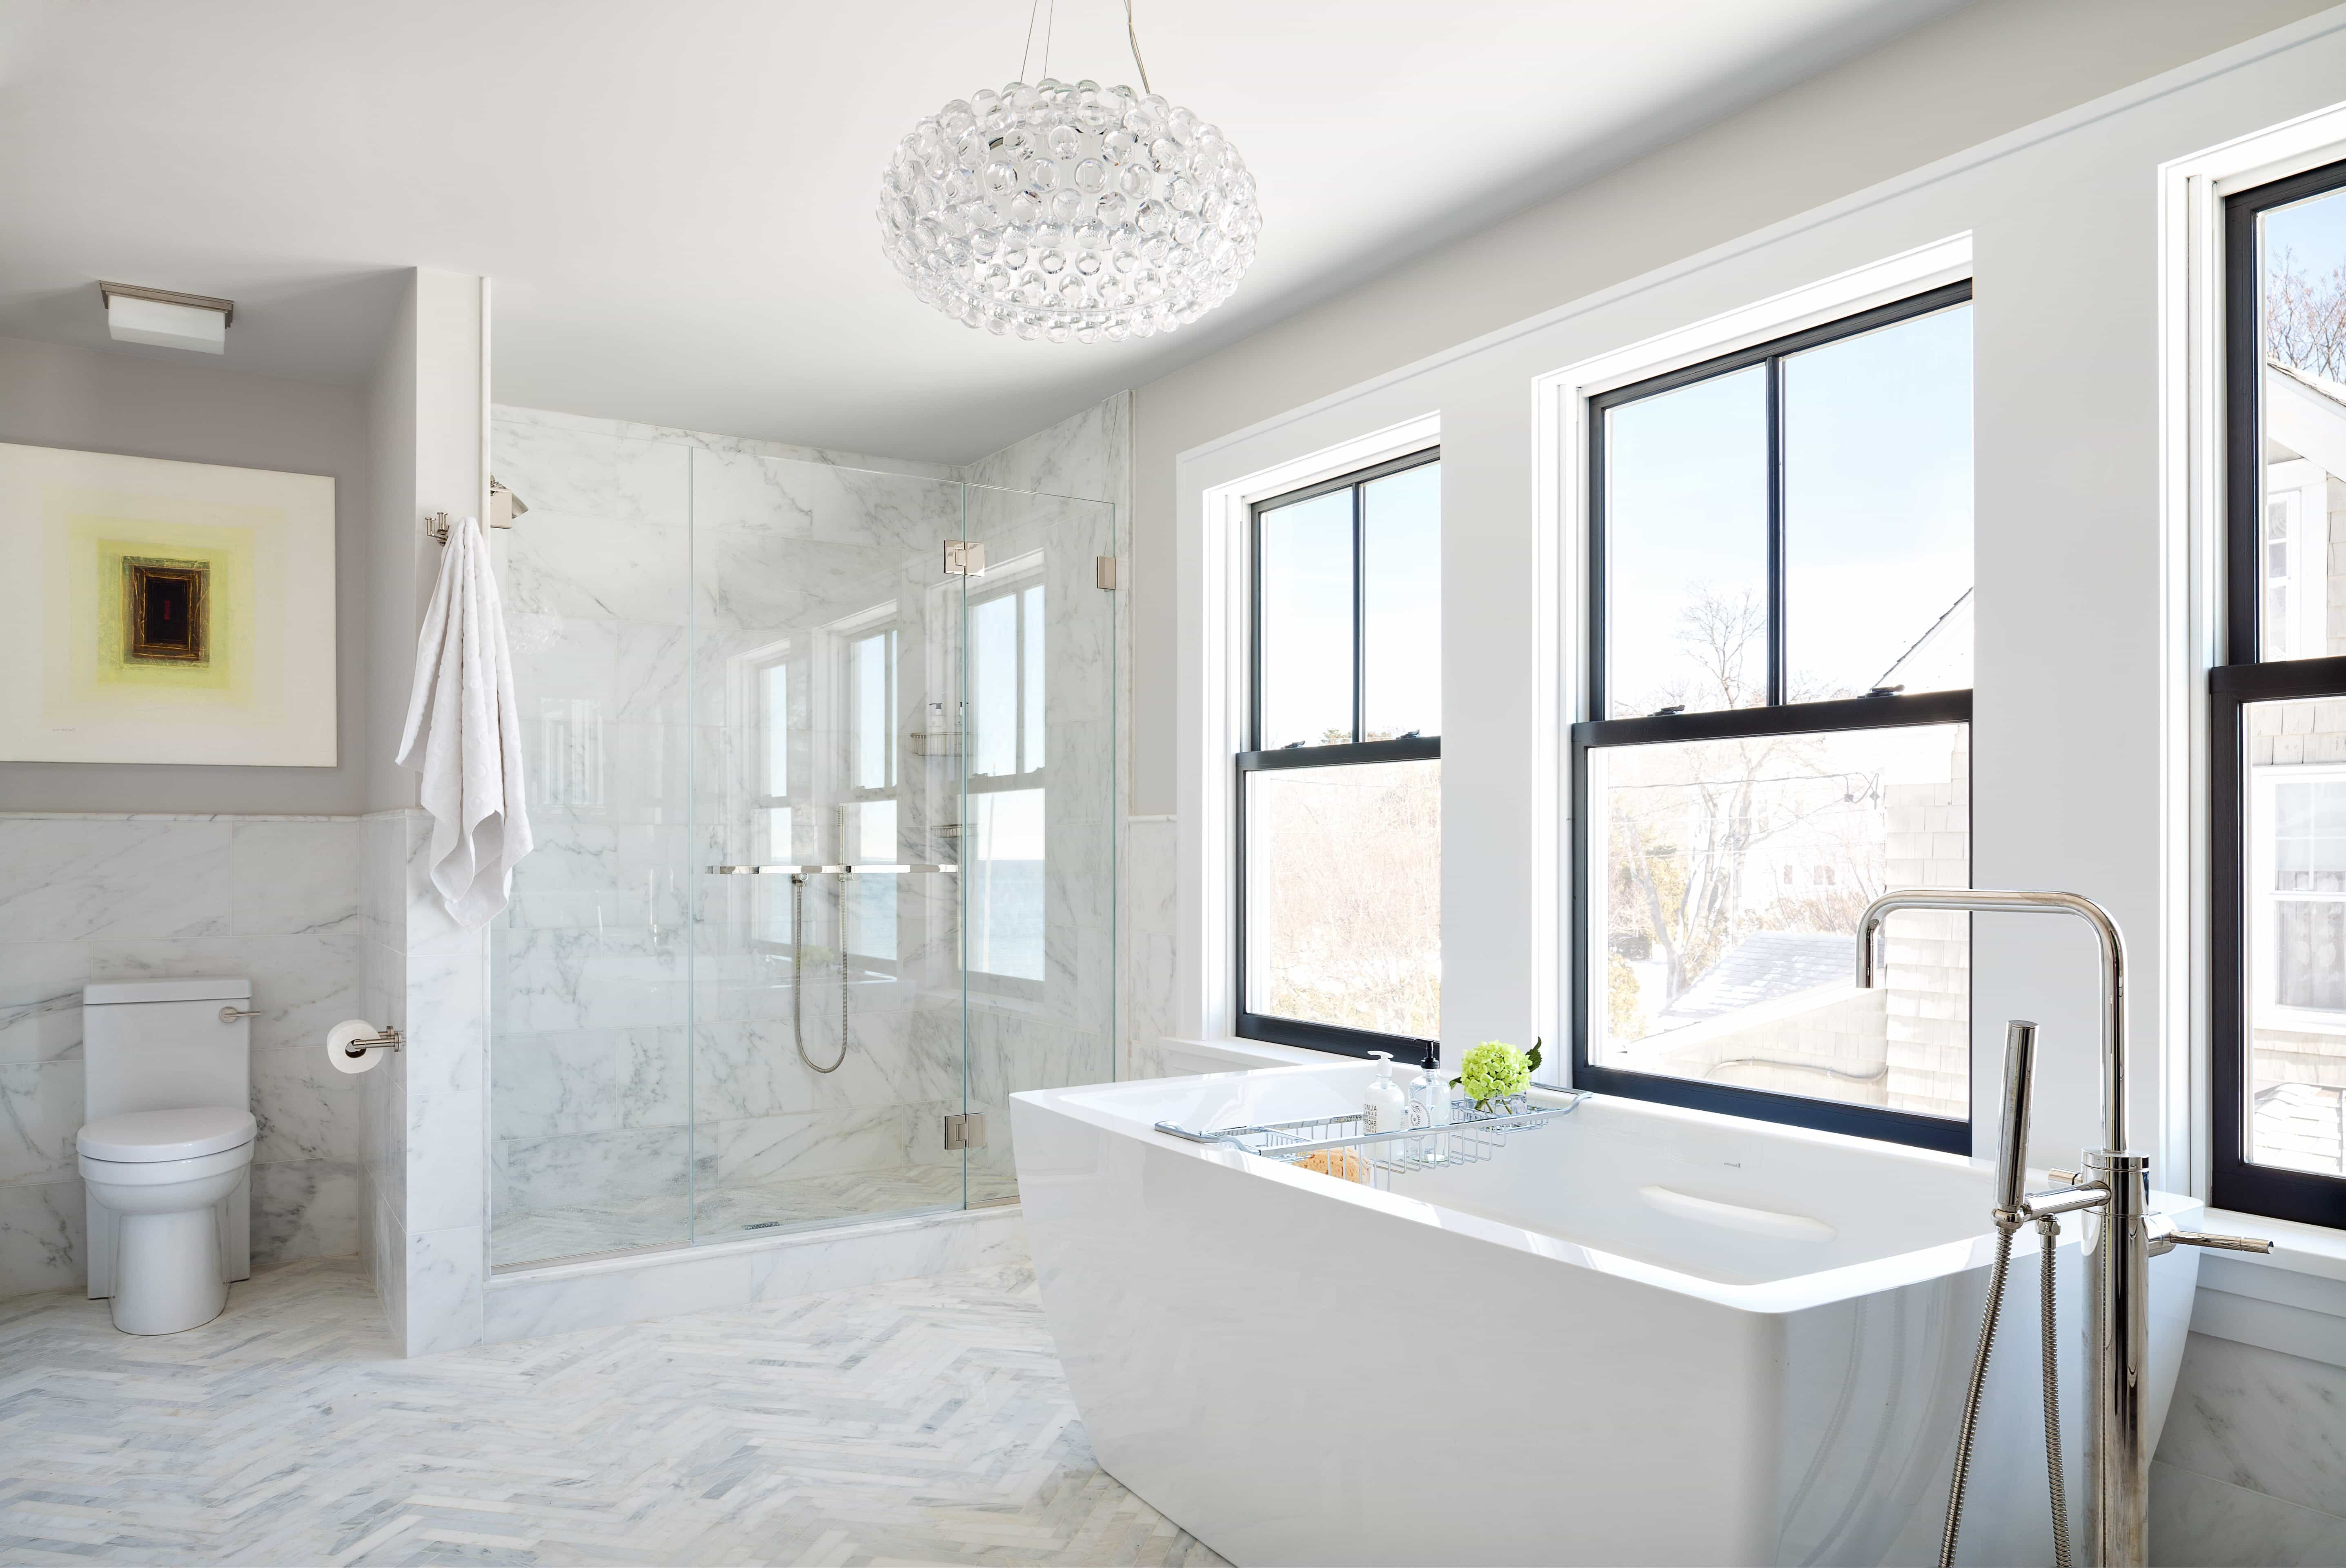 2017 Contemporary White Master Bathroom With Marble Floors (Image 1 of 13)